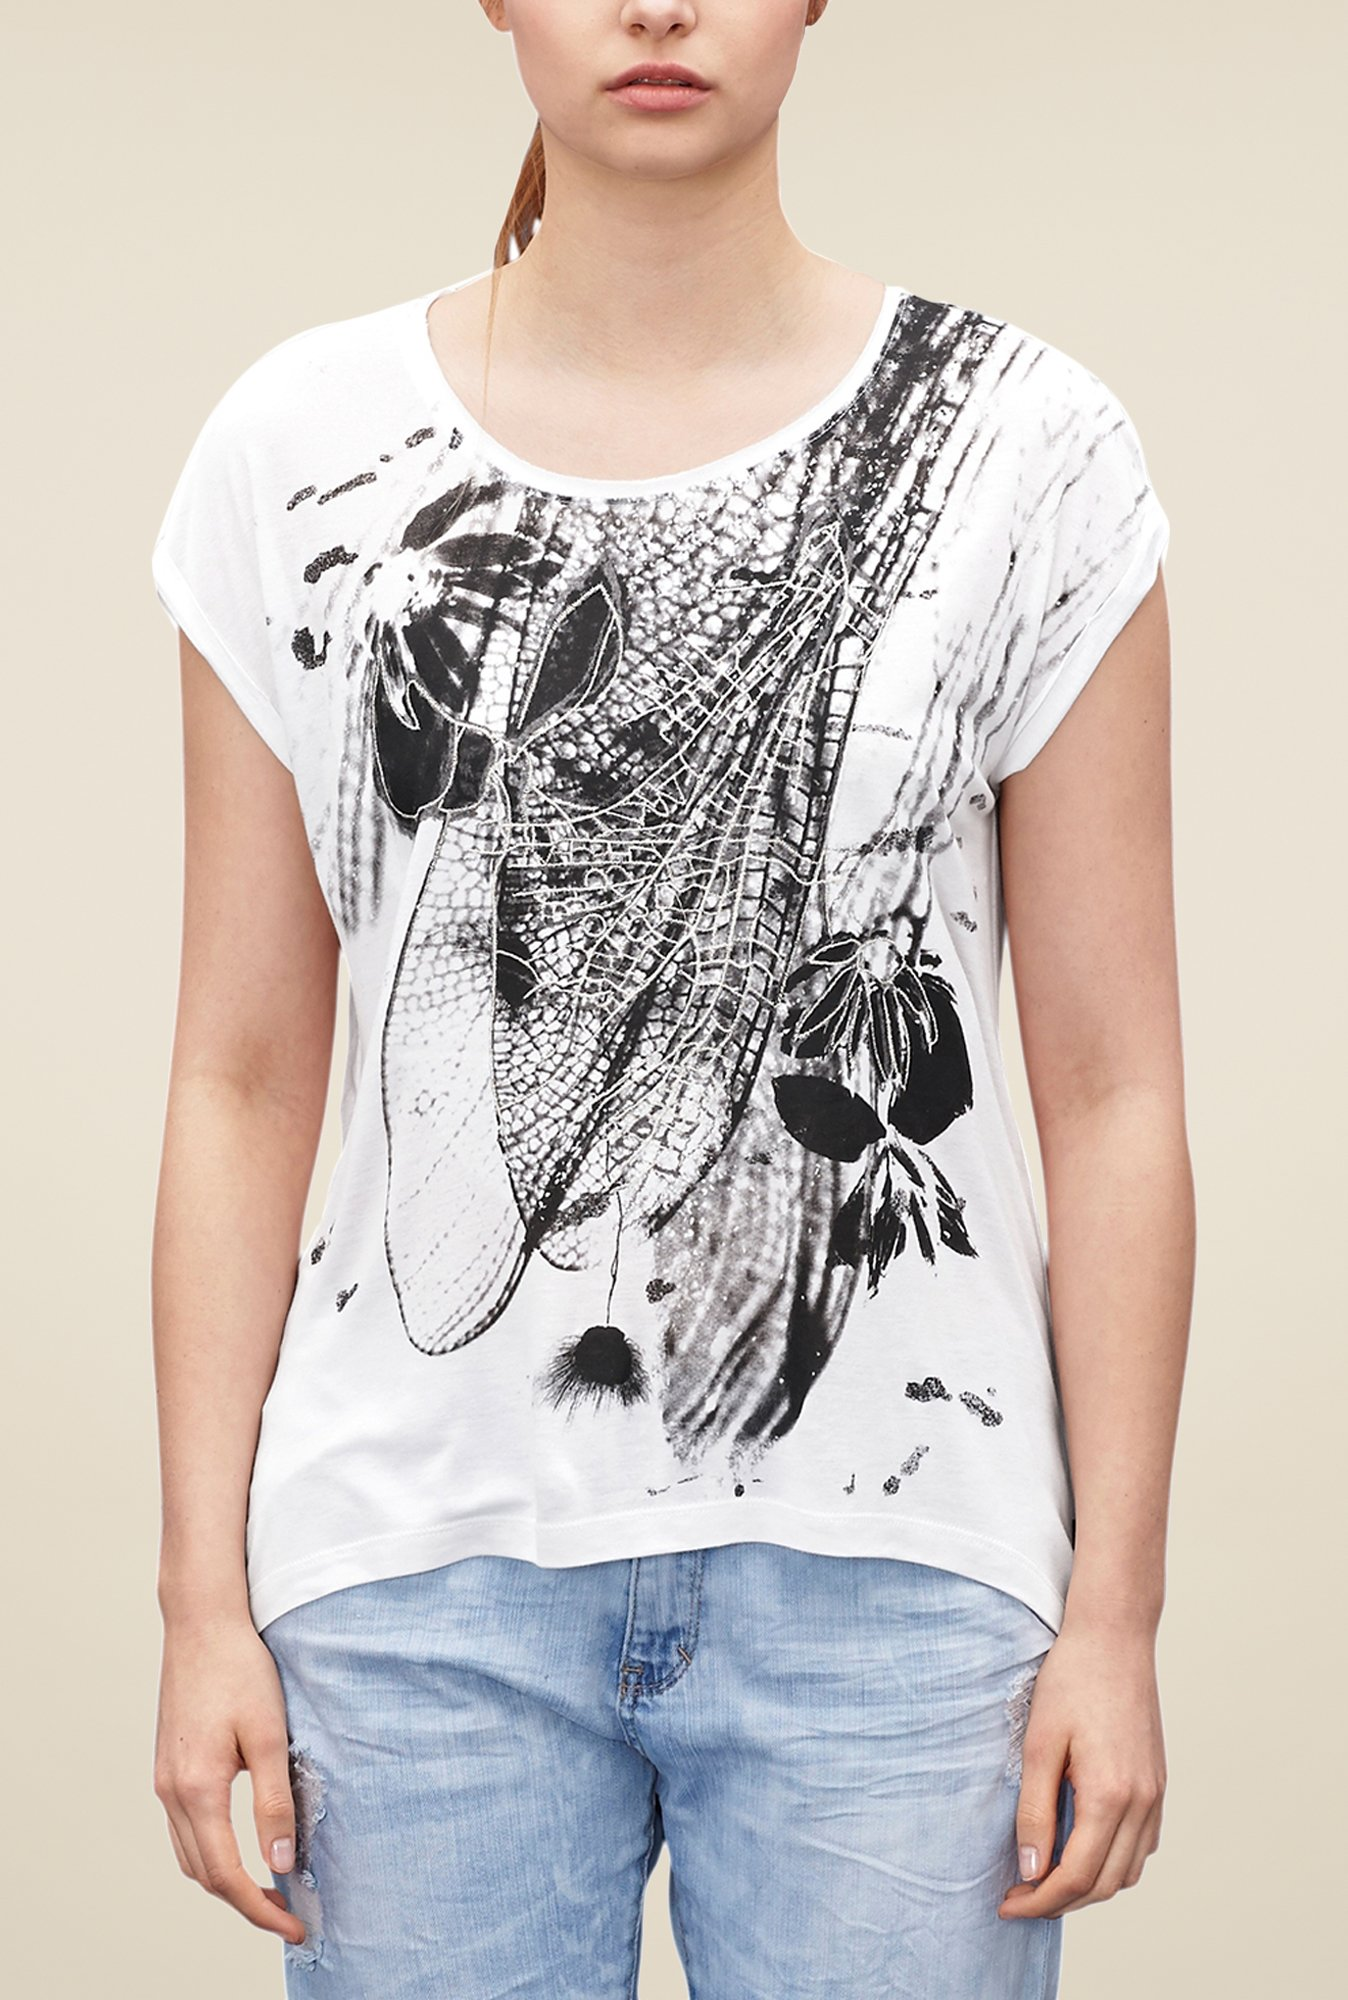 s.Oliver White Graphic Print T Shirt